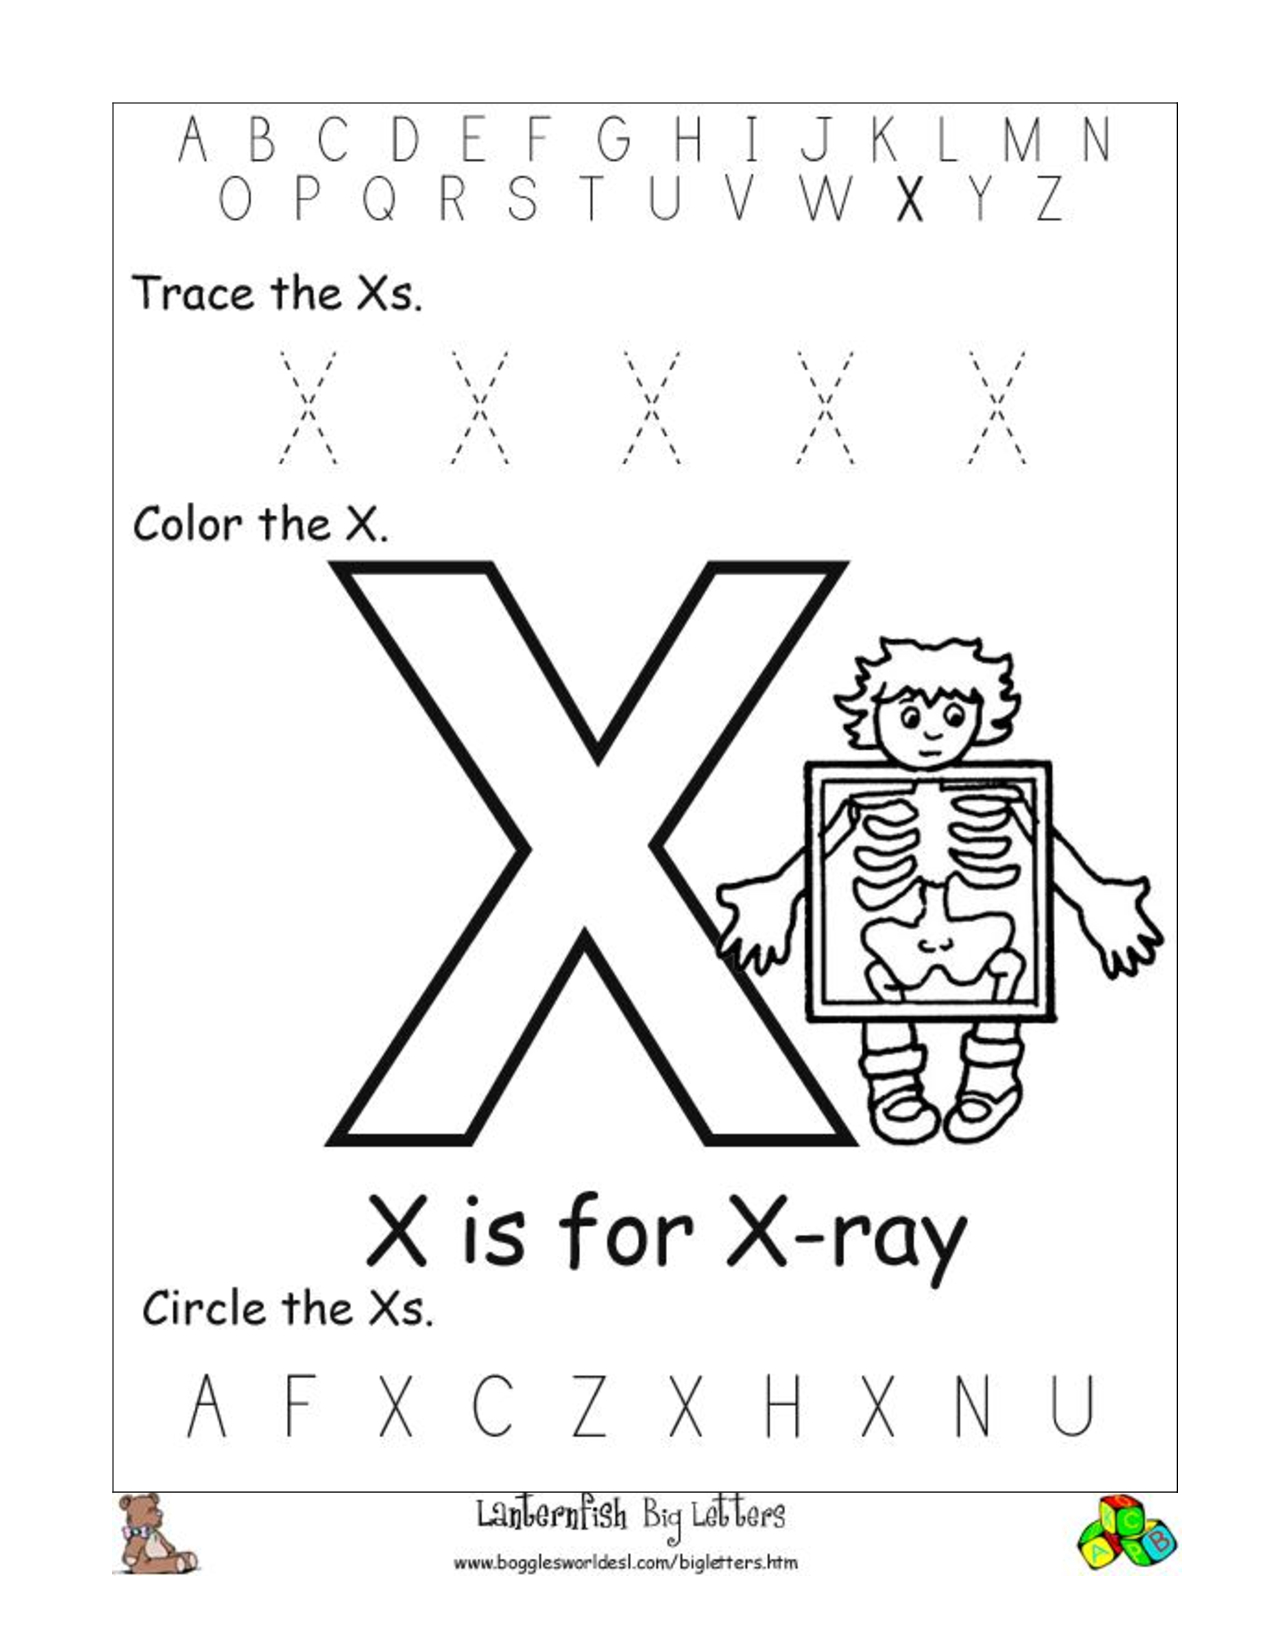 Alphabet Worksheets For Preschoolers |  Of The Alphabet in Letter X Worksheets For Prek